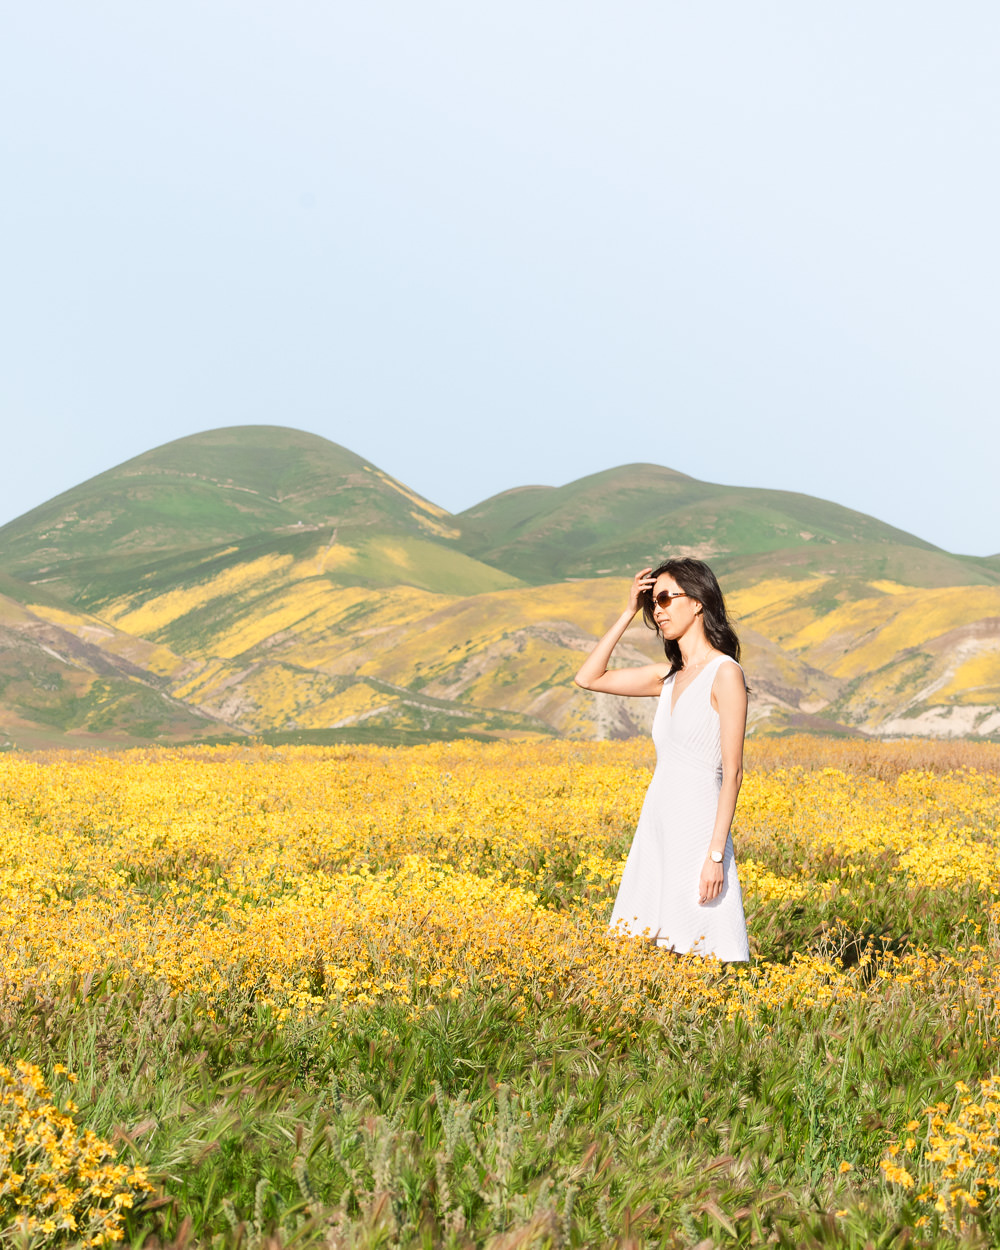 Superbloom at the Carrizo Plain